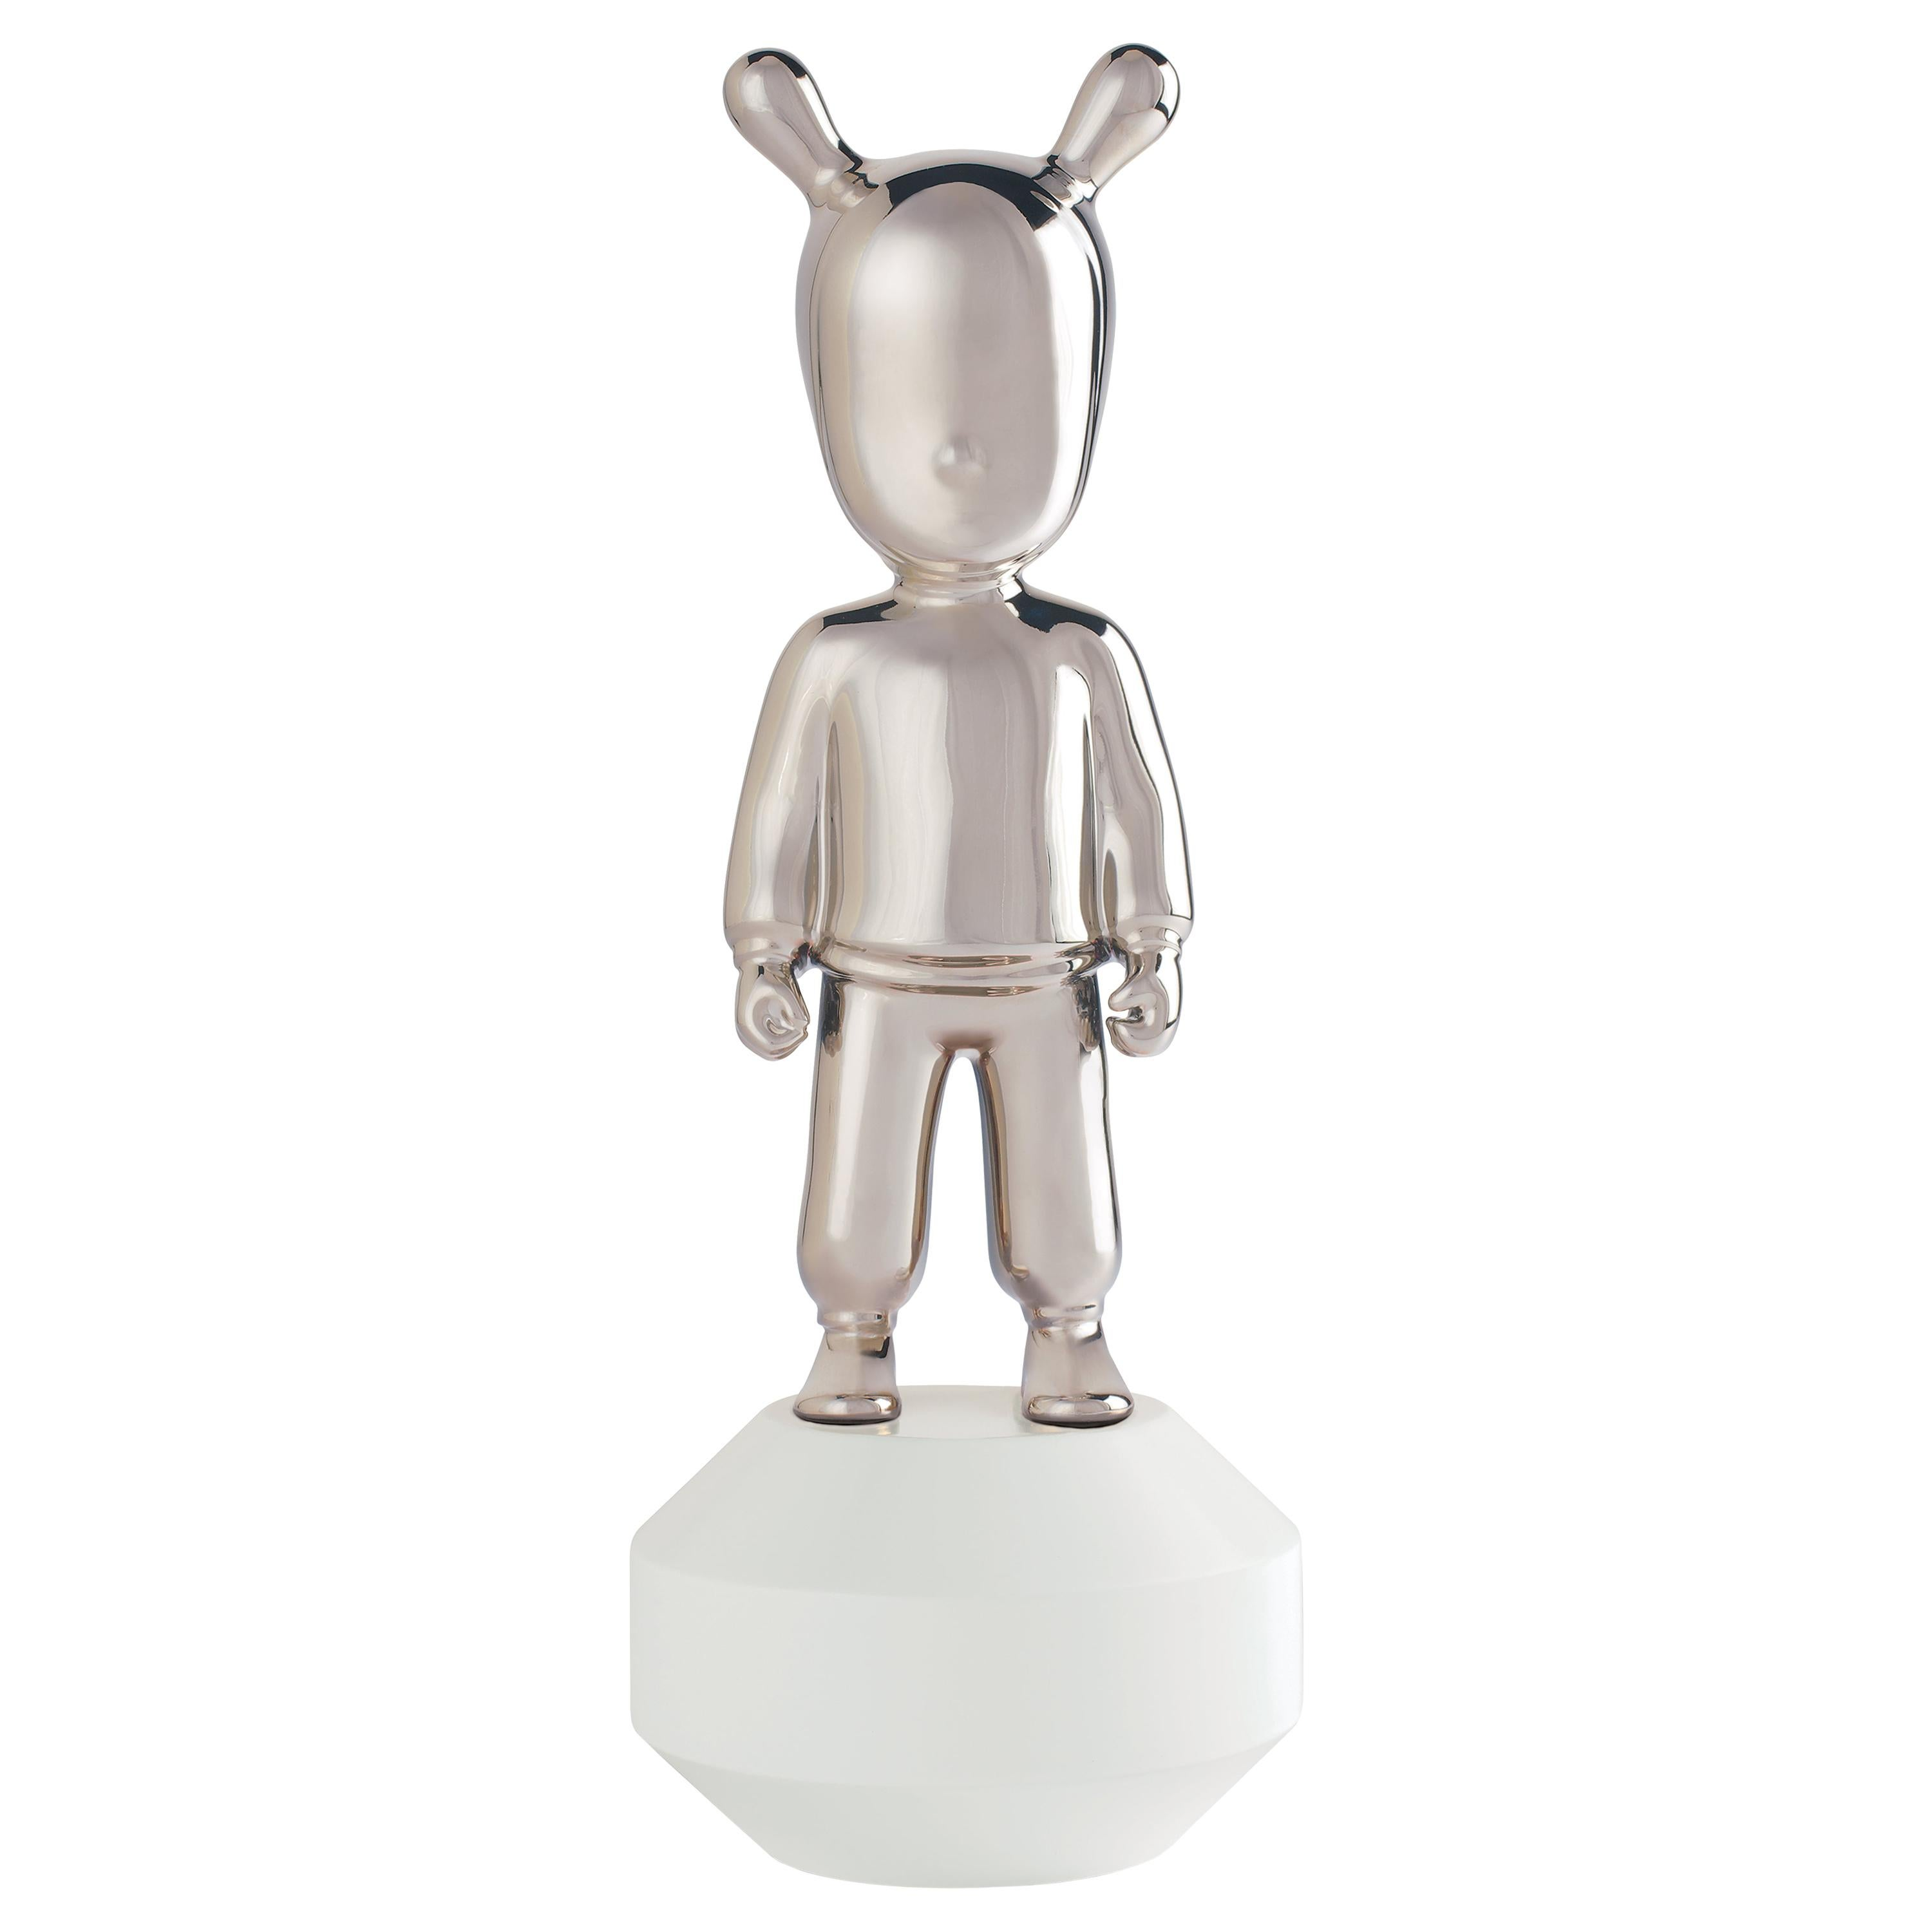 Lladro the Silver Guest Little Figurine in Silver by Jaime Hayon